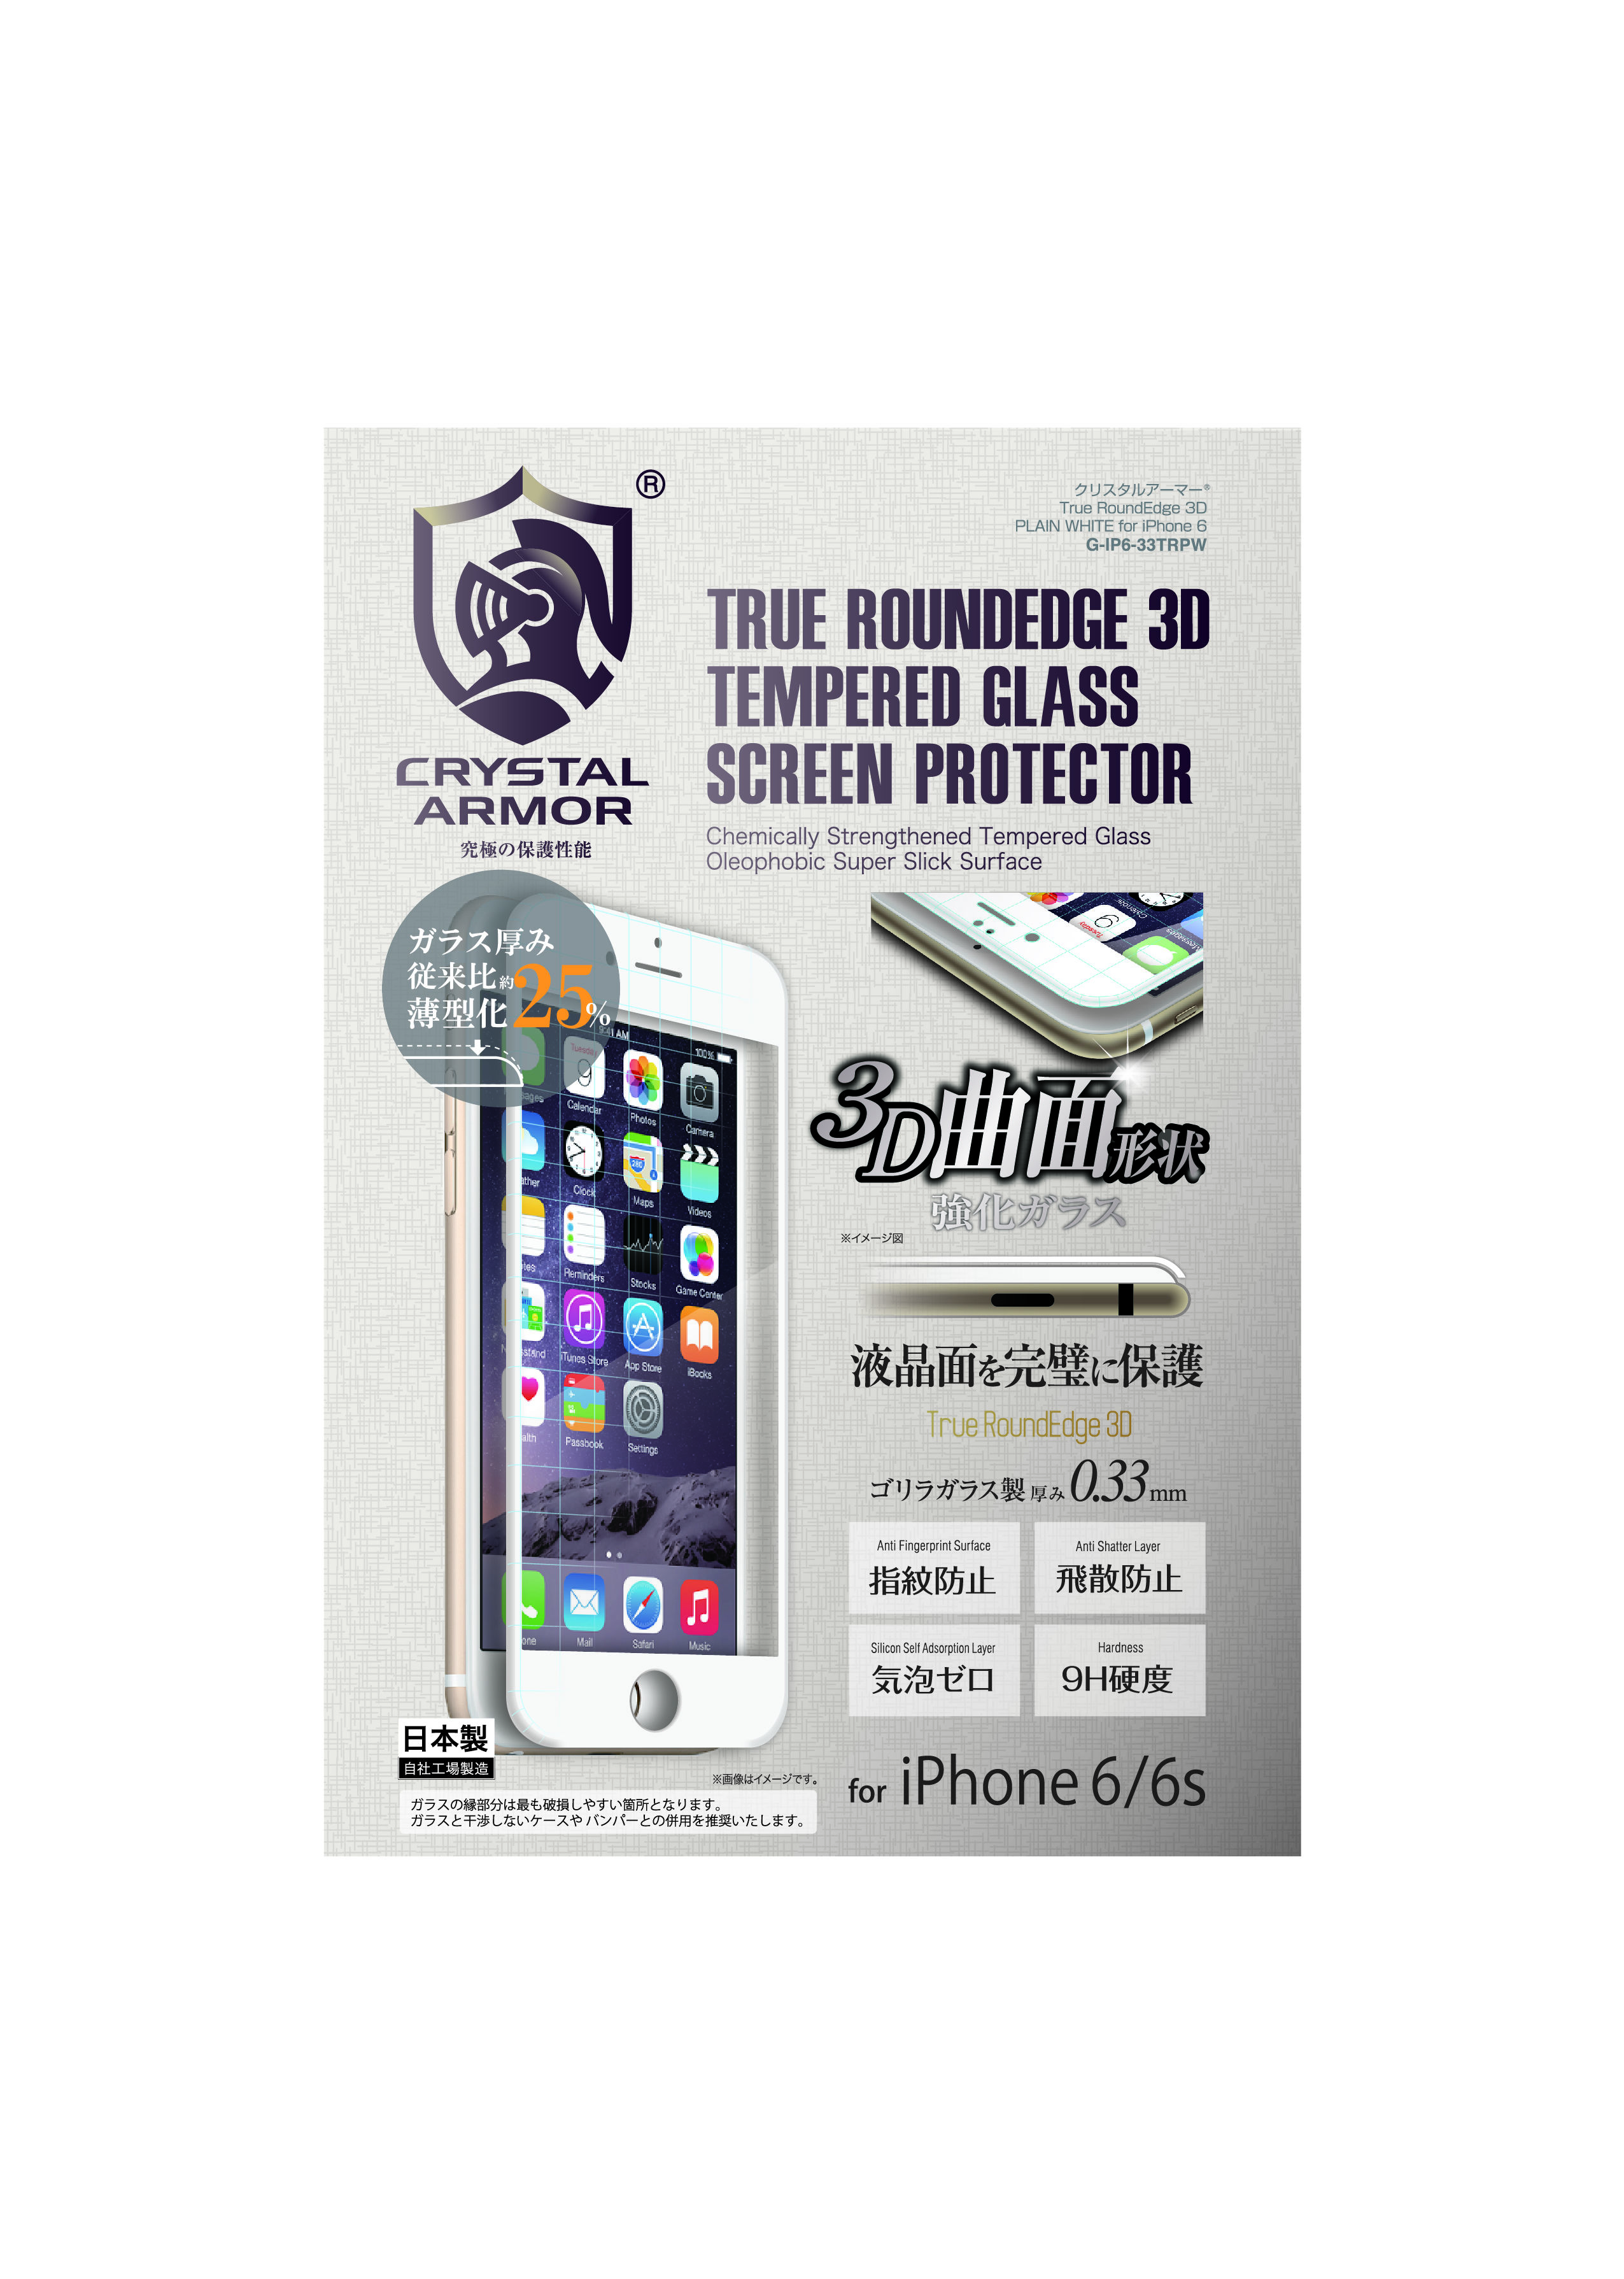 【iPhone6 / 6s】【薄型化】クリスタルアーマー(R) True RoundEdge 3D for iPhone6 / 6s